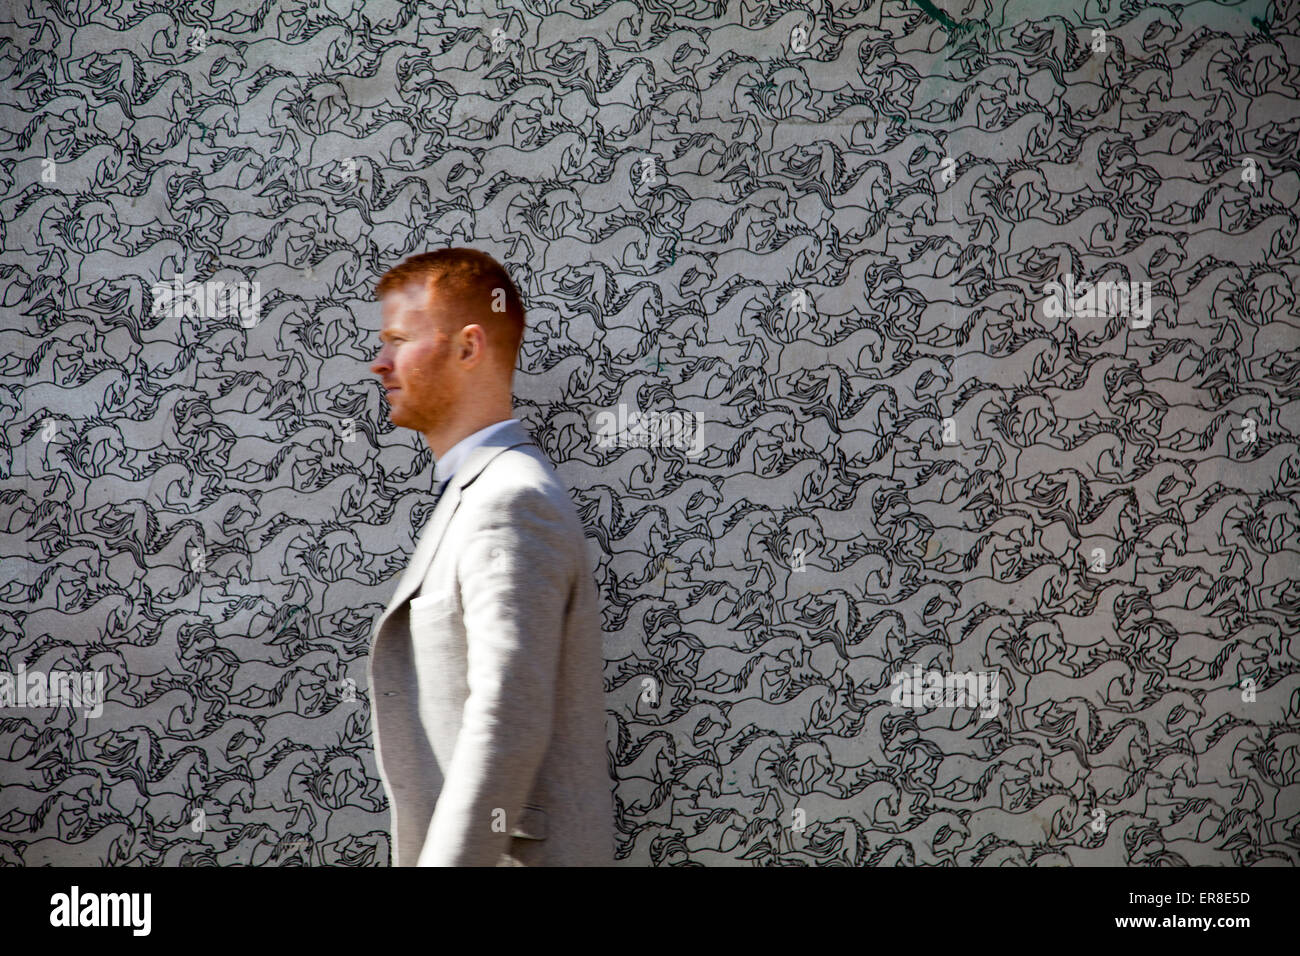 Man Passes Horse Illusion Wallpaper in Soho - London UK - Stock Image